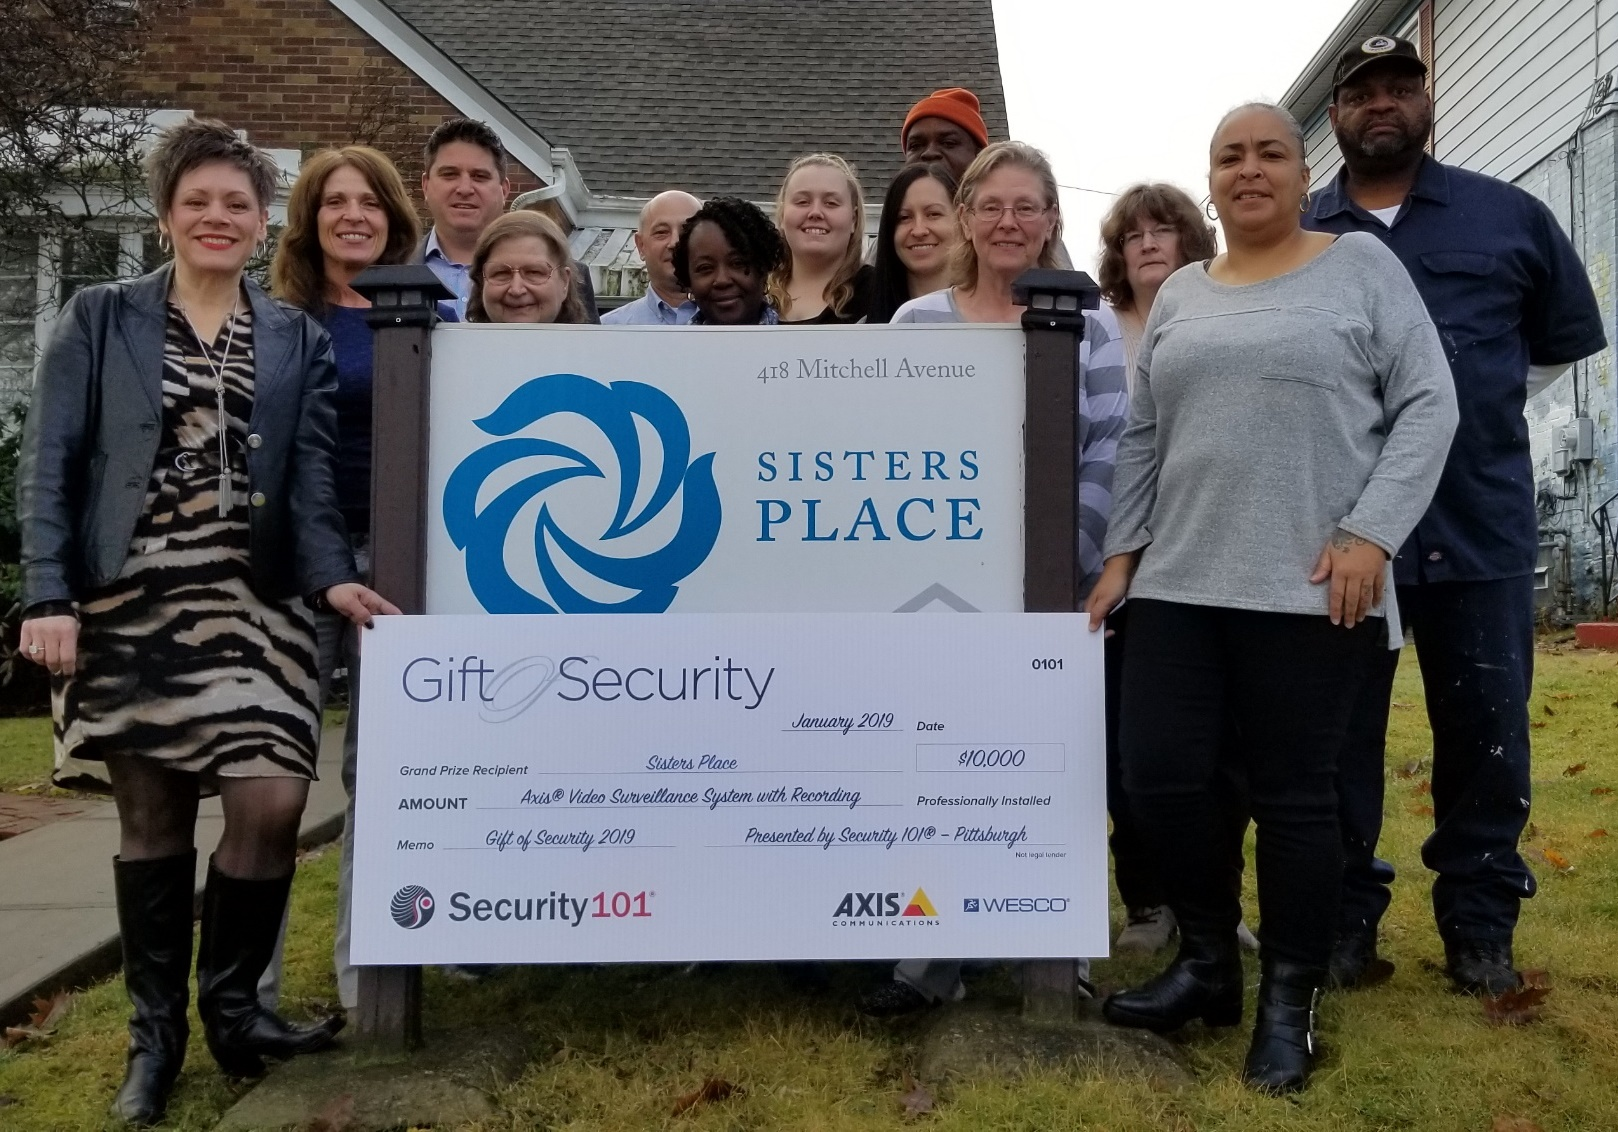 Sisters Place posting with a large check from Gift Security.